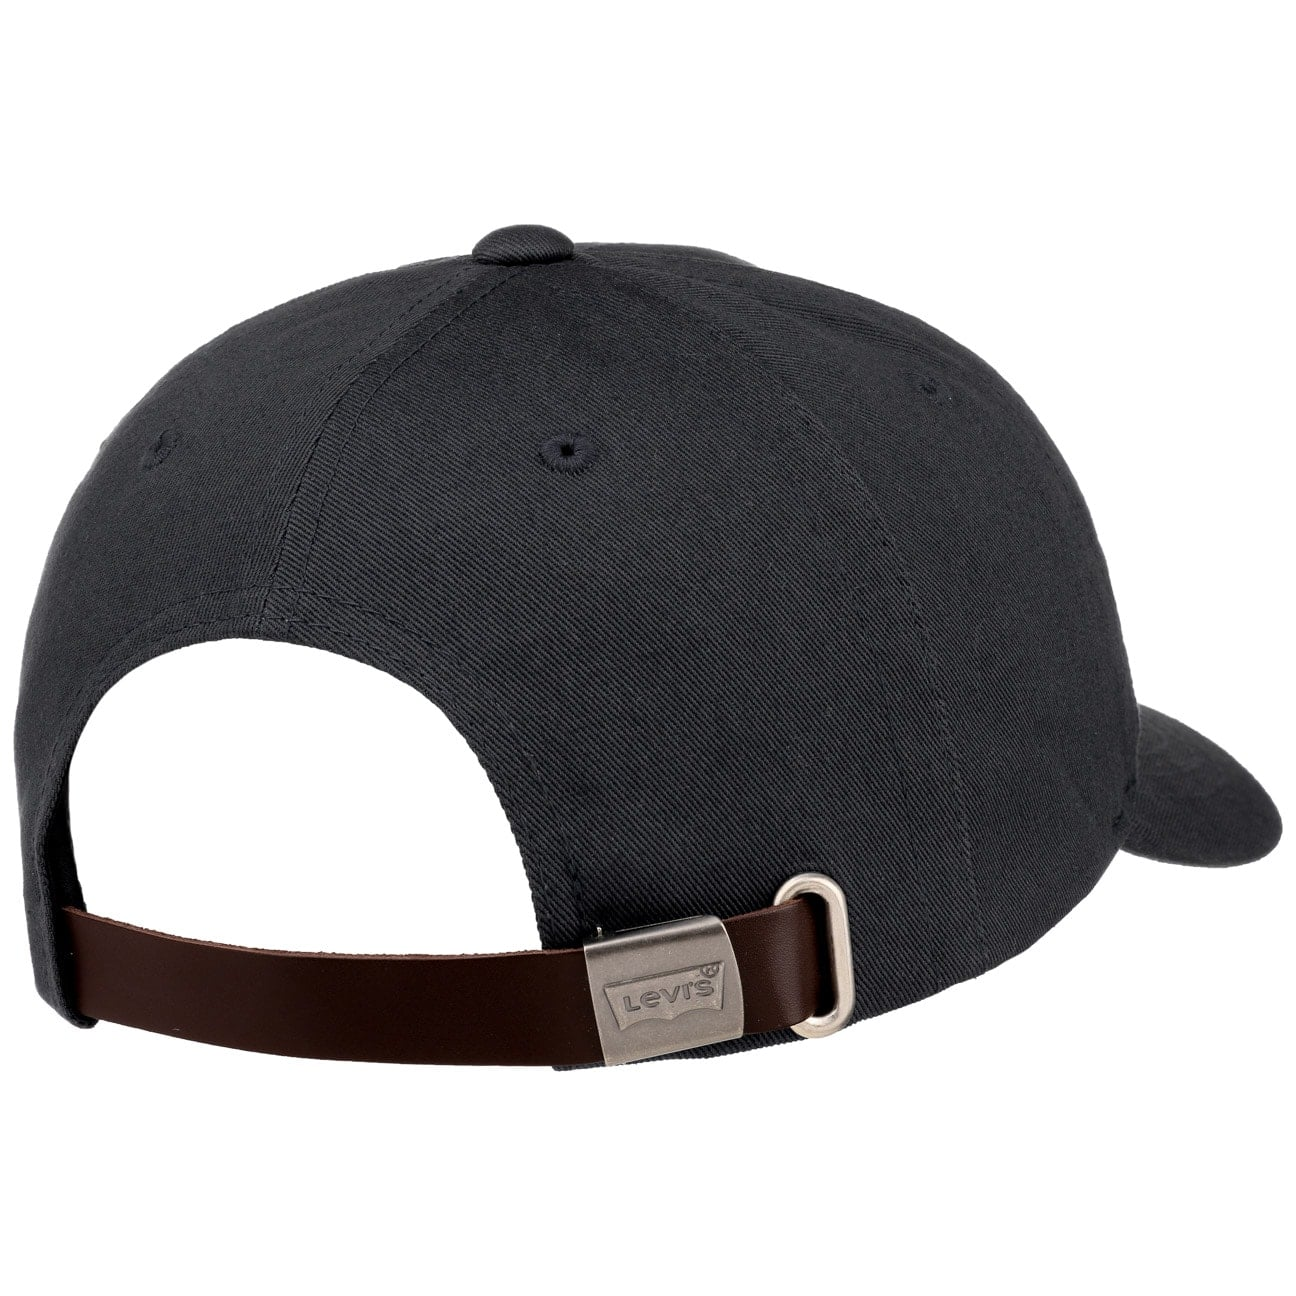 20f4a2cad5e4e9 ... Classic Twill Red Tab Cap by Levi´s - black 4 ...